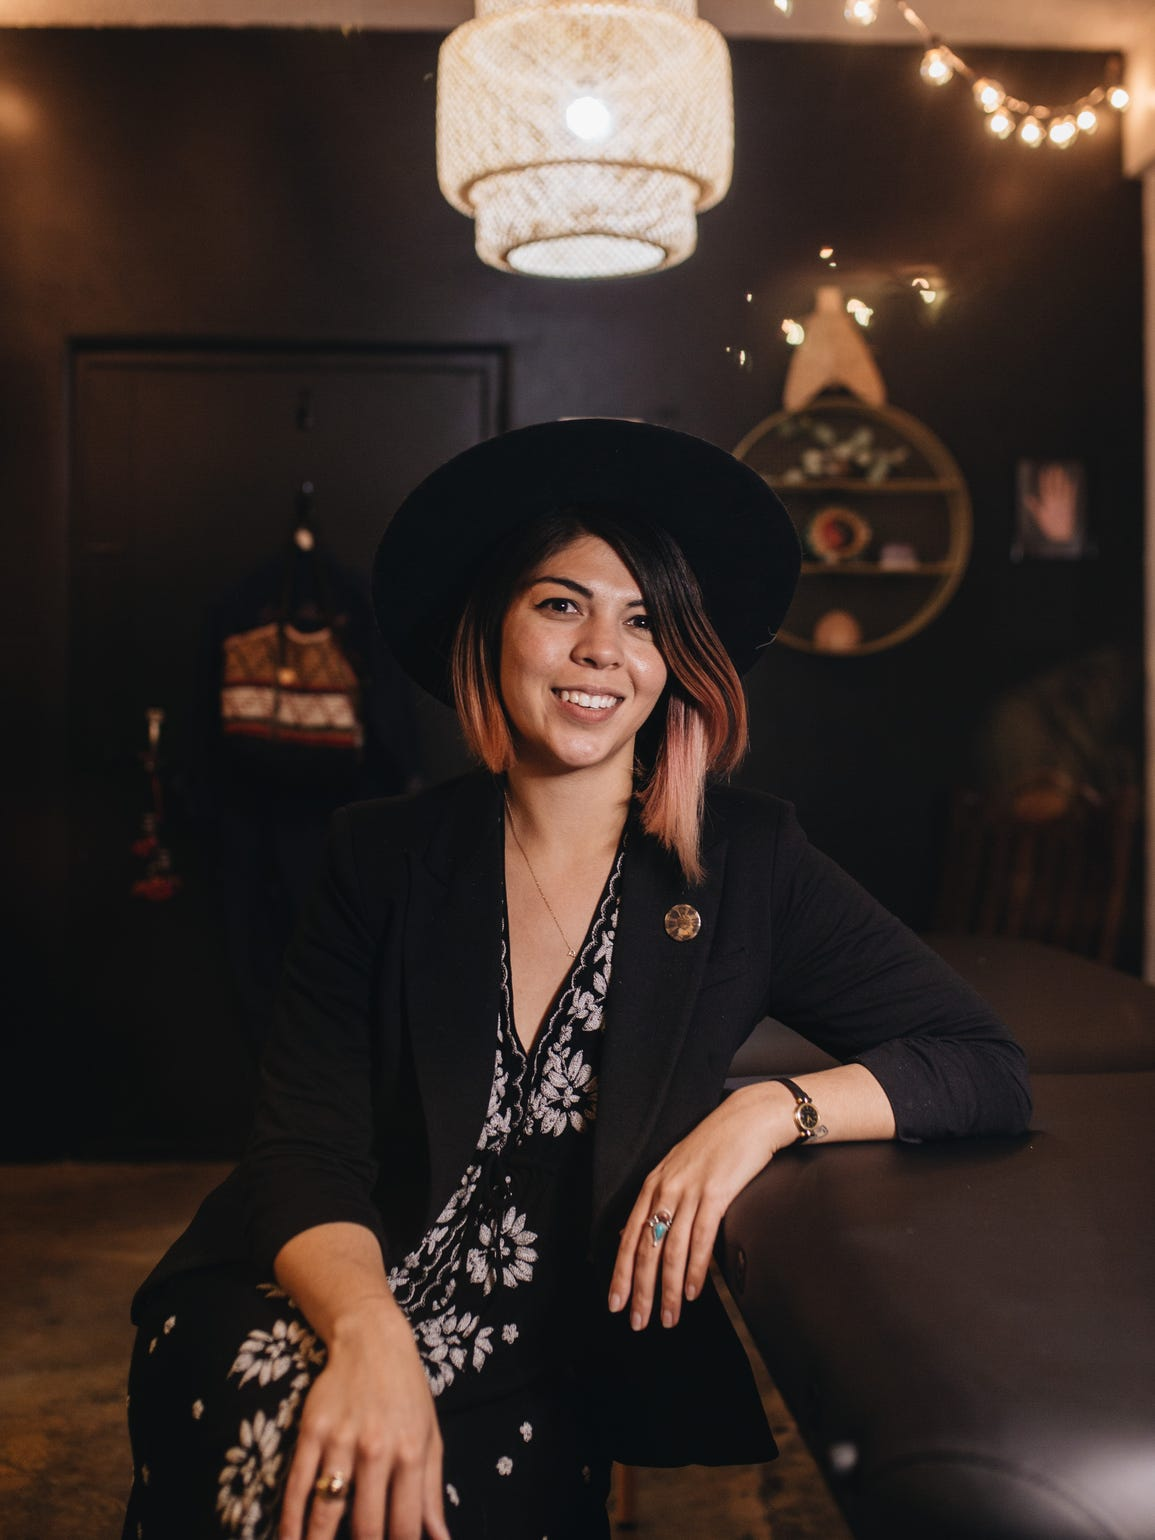 Hand-poke tattoo artist Taylor Elyse Compton in her